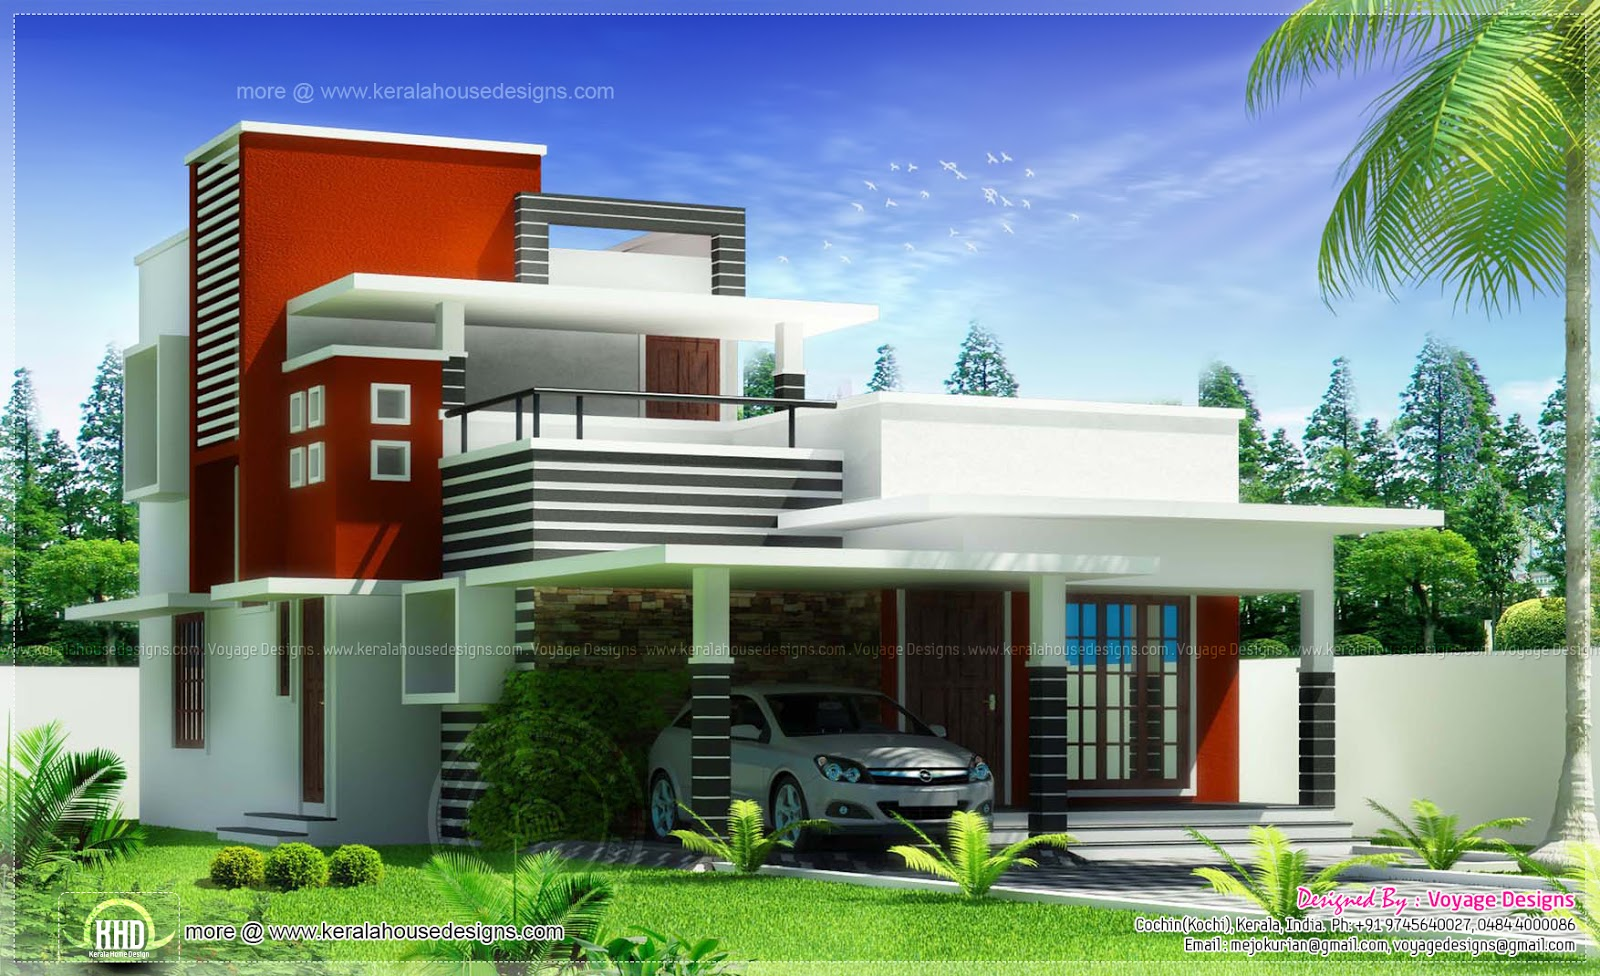 3 bed room contemporary style house home kerala plans - Housing designs ...